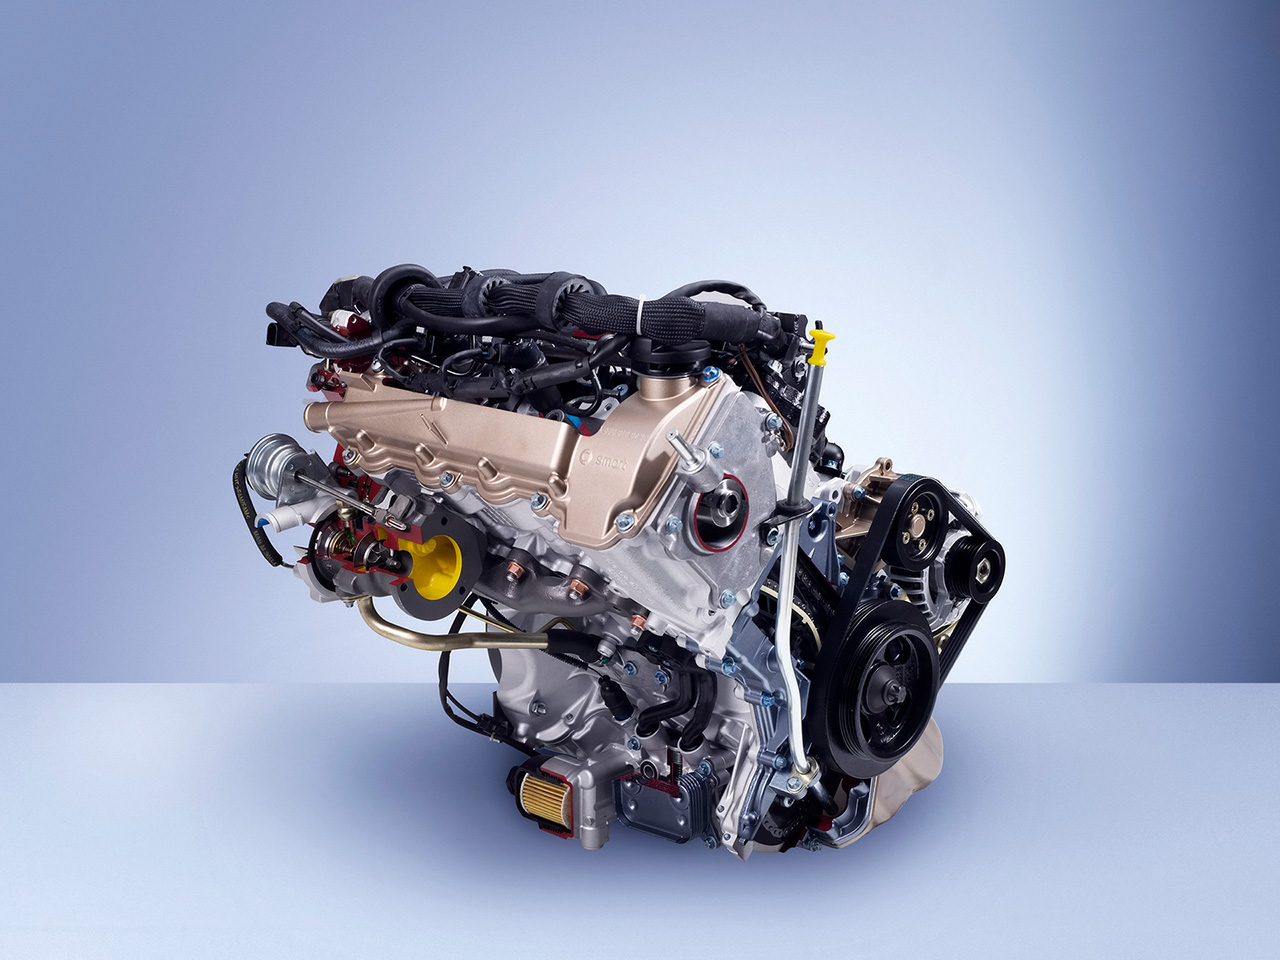 Smart Car Engine Specs >> Smart Fortwo Cdi Picture 6 Reviews News Specs Buy Car